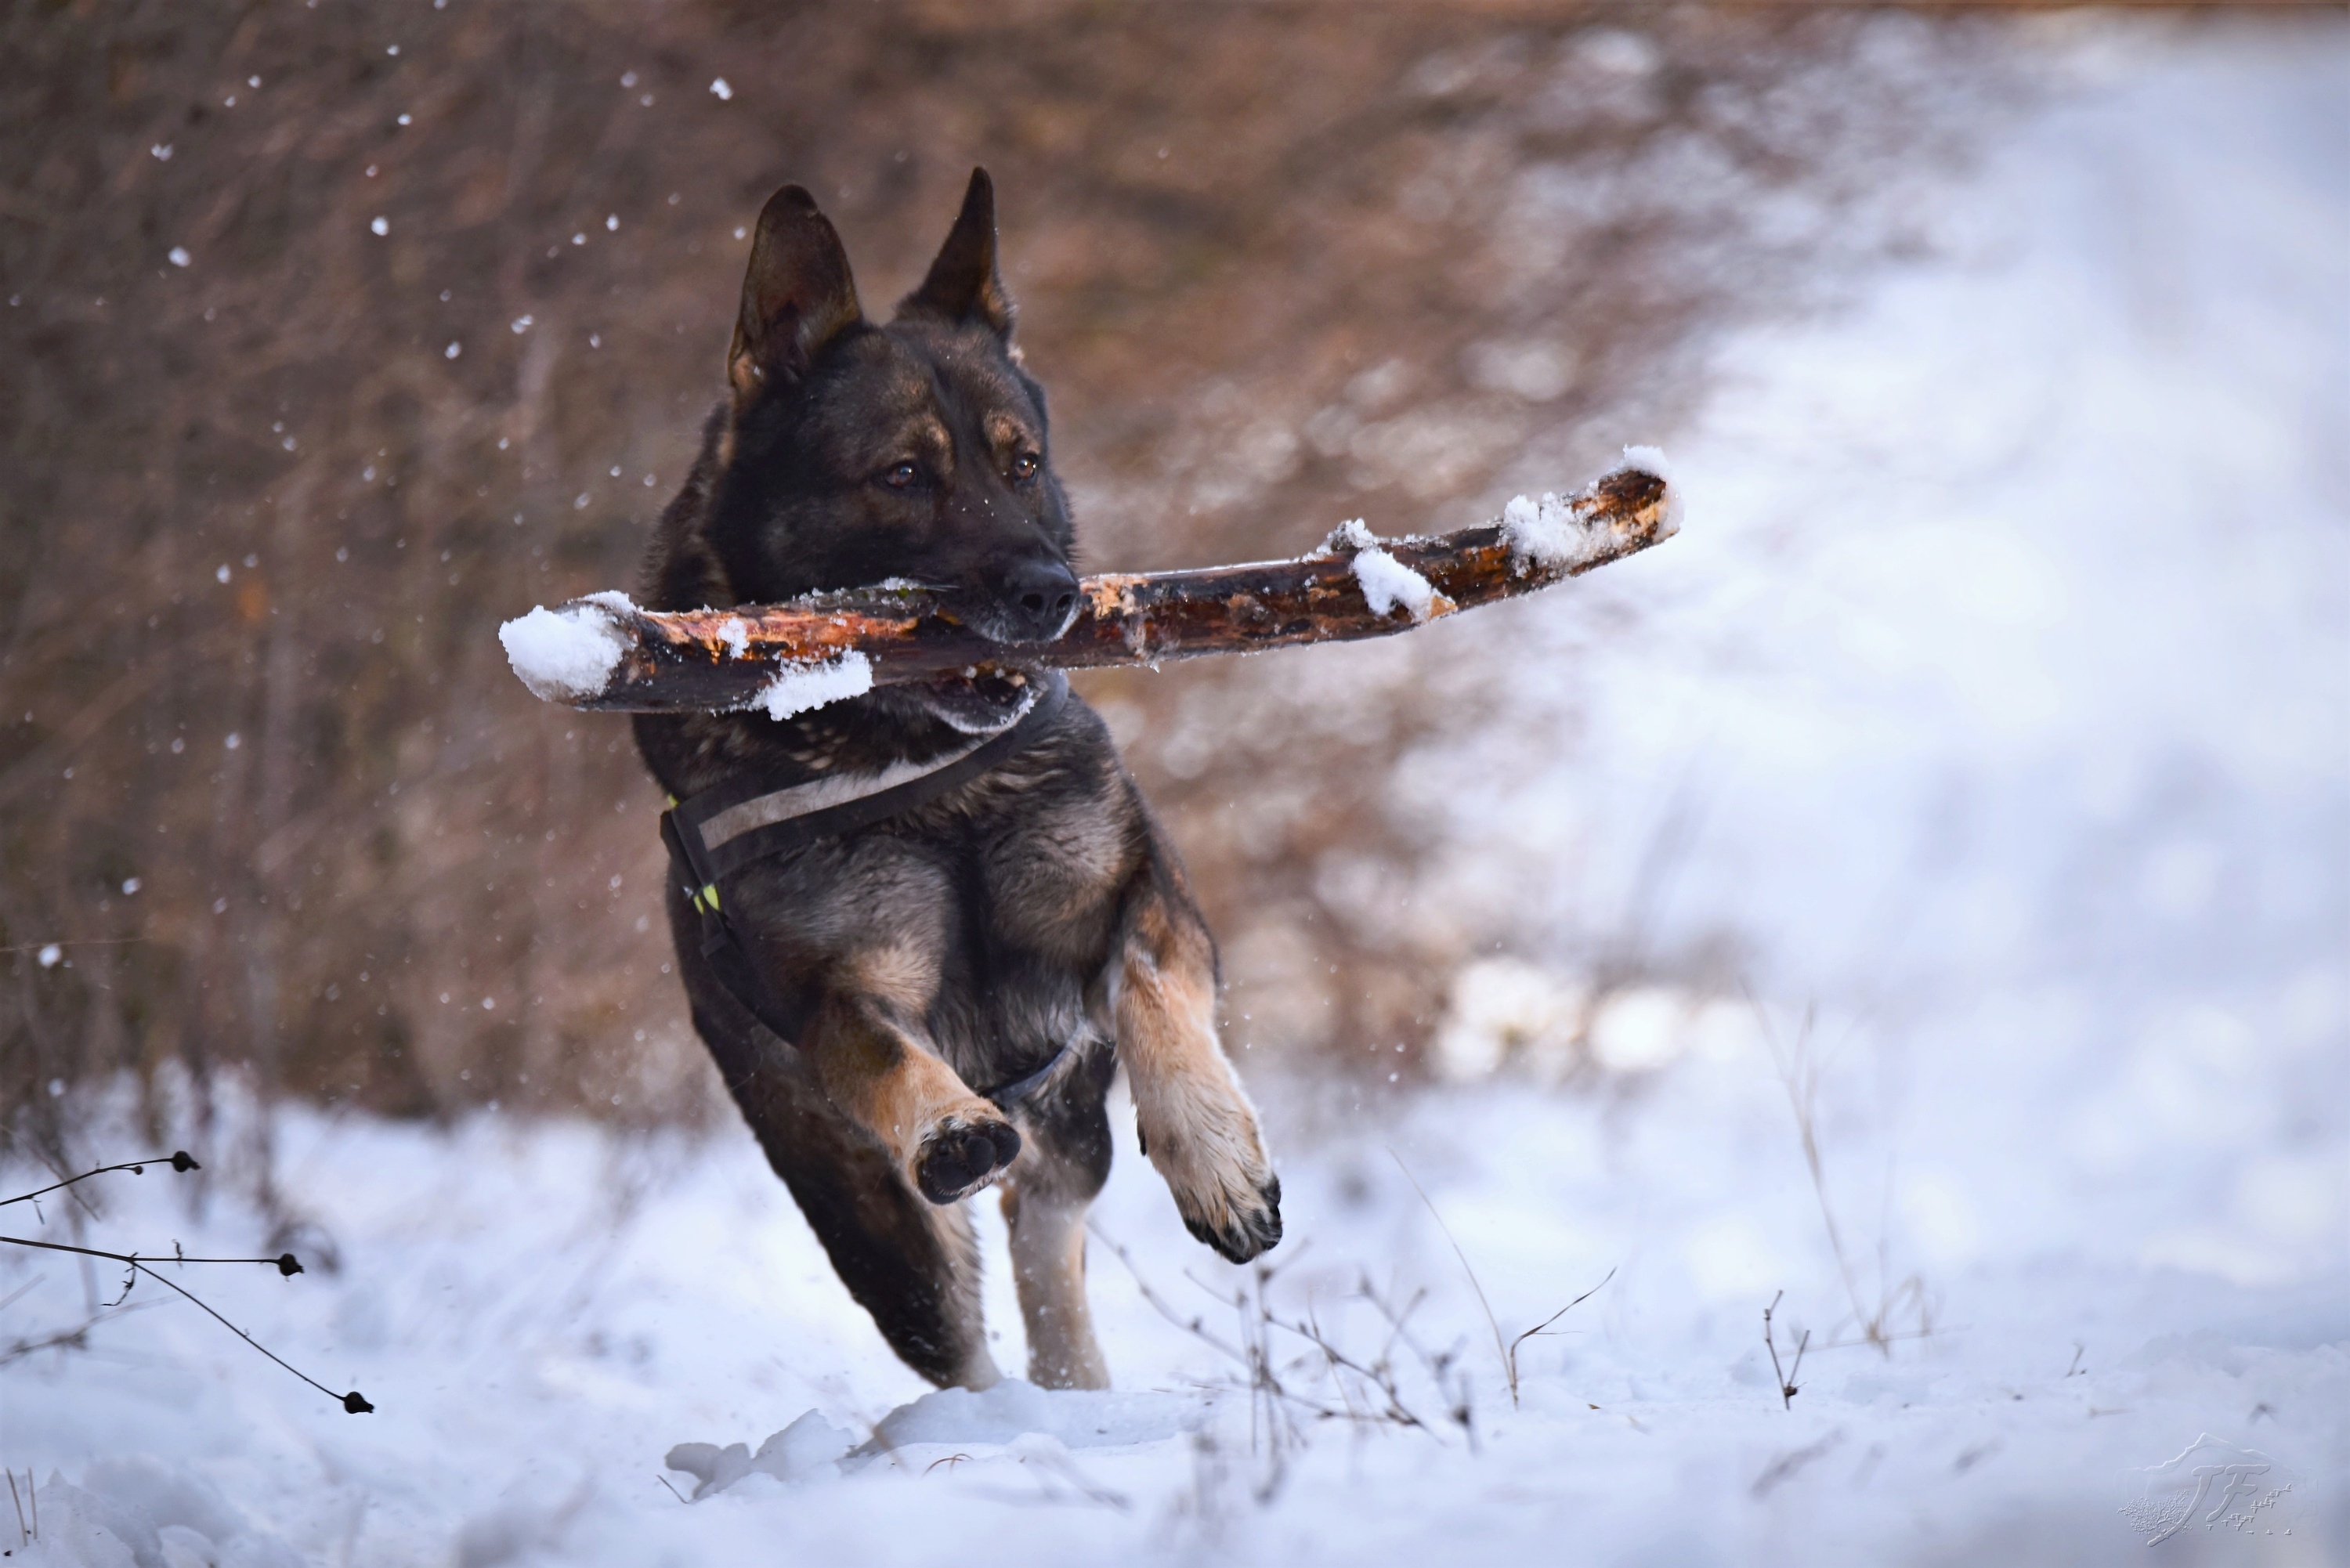 dog carrying stick in winter